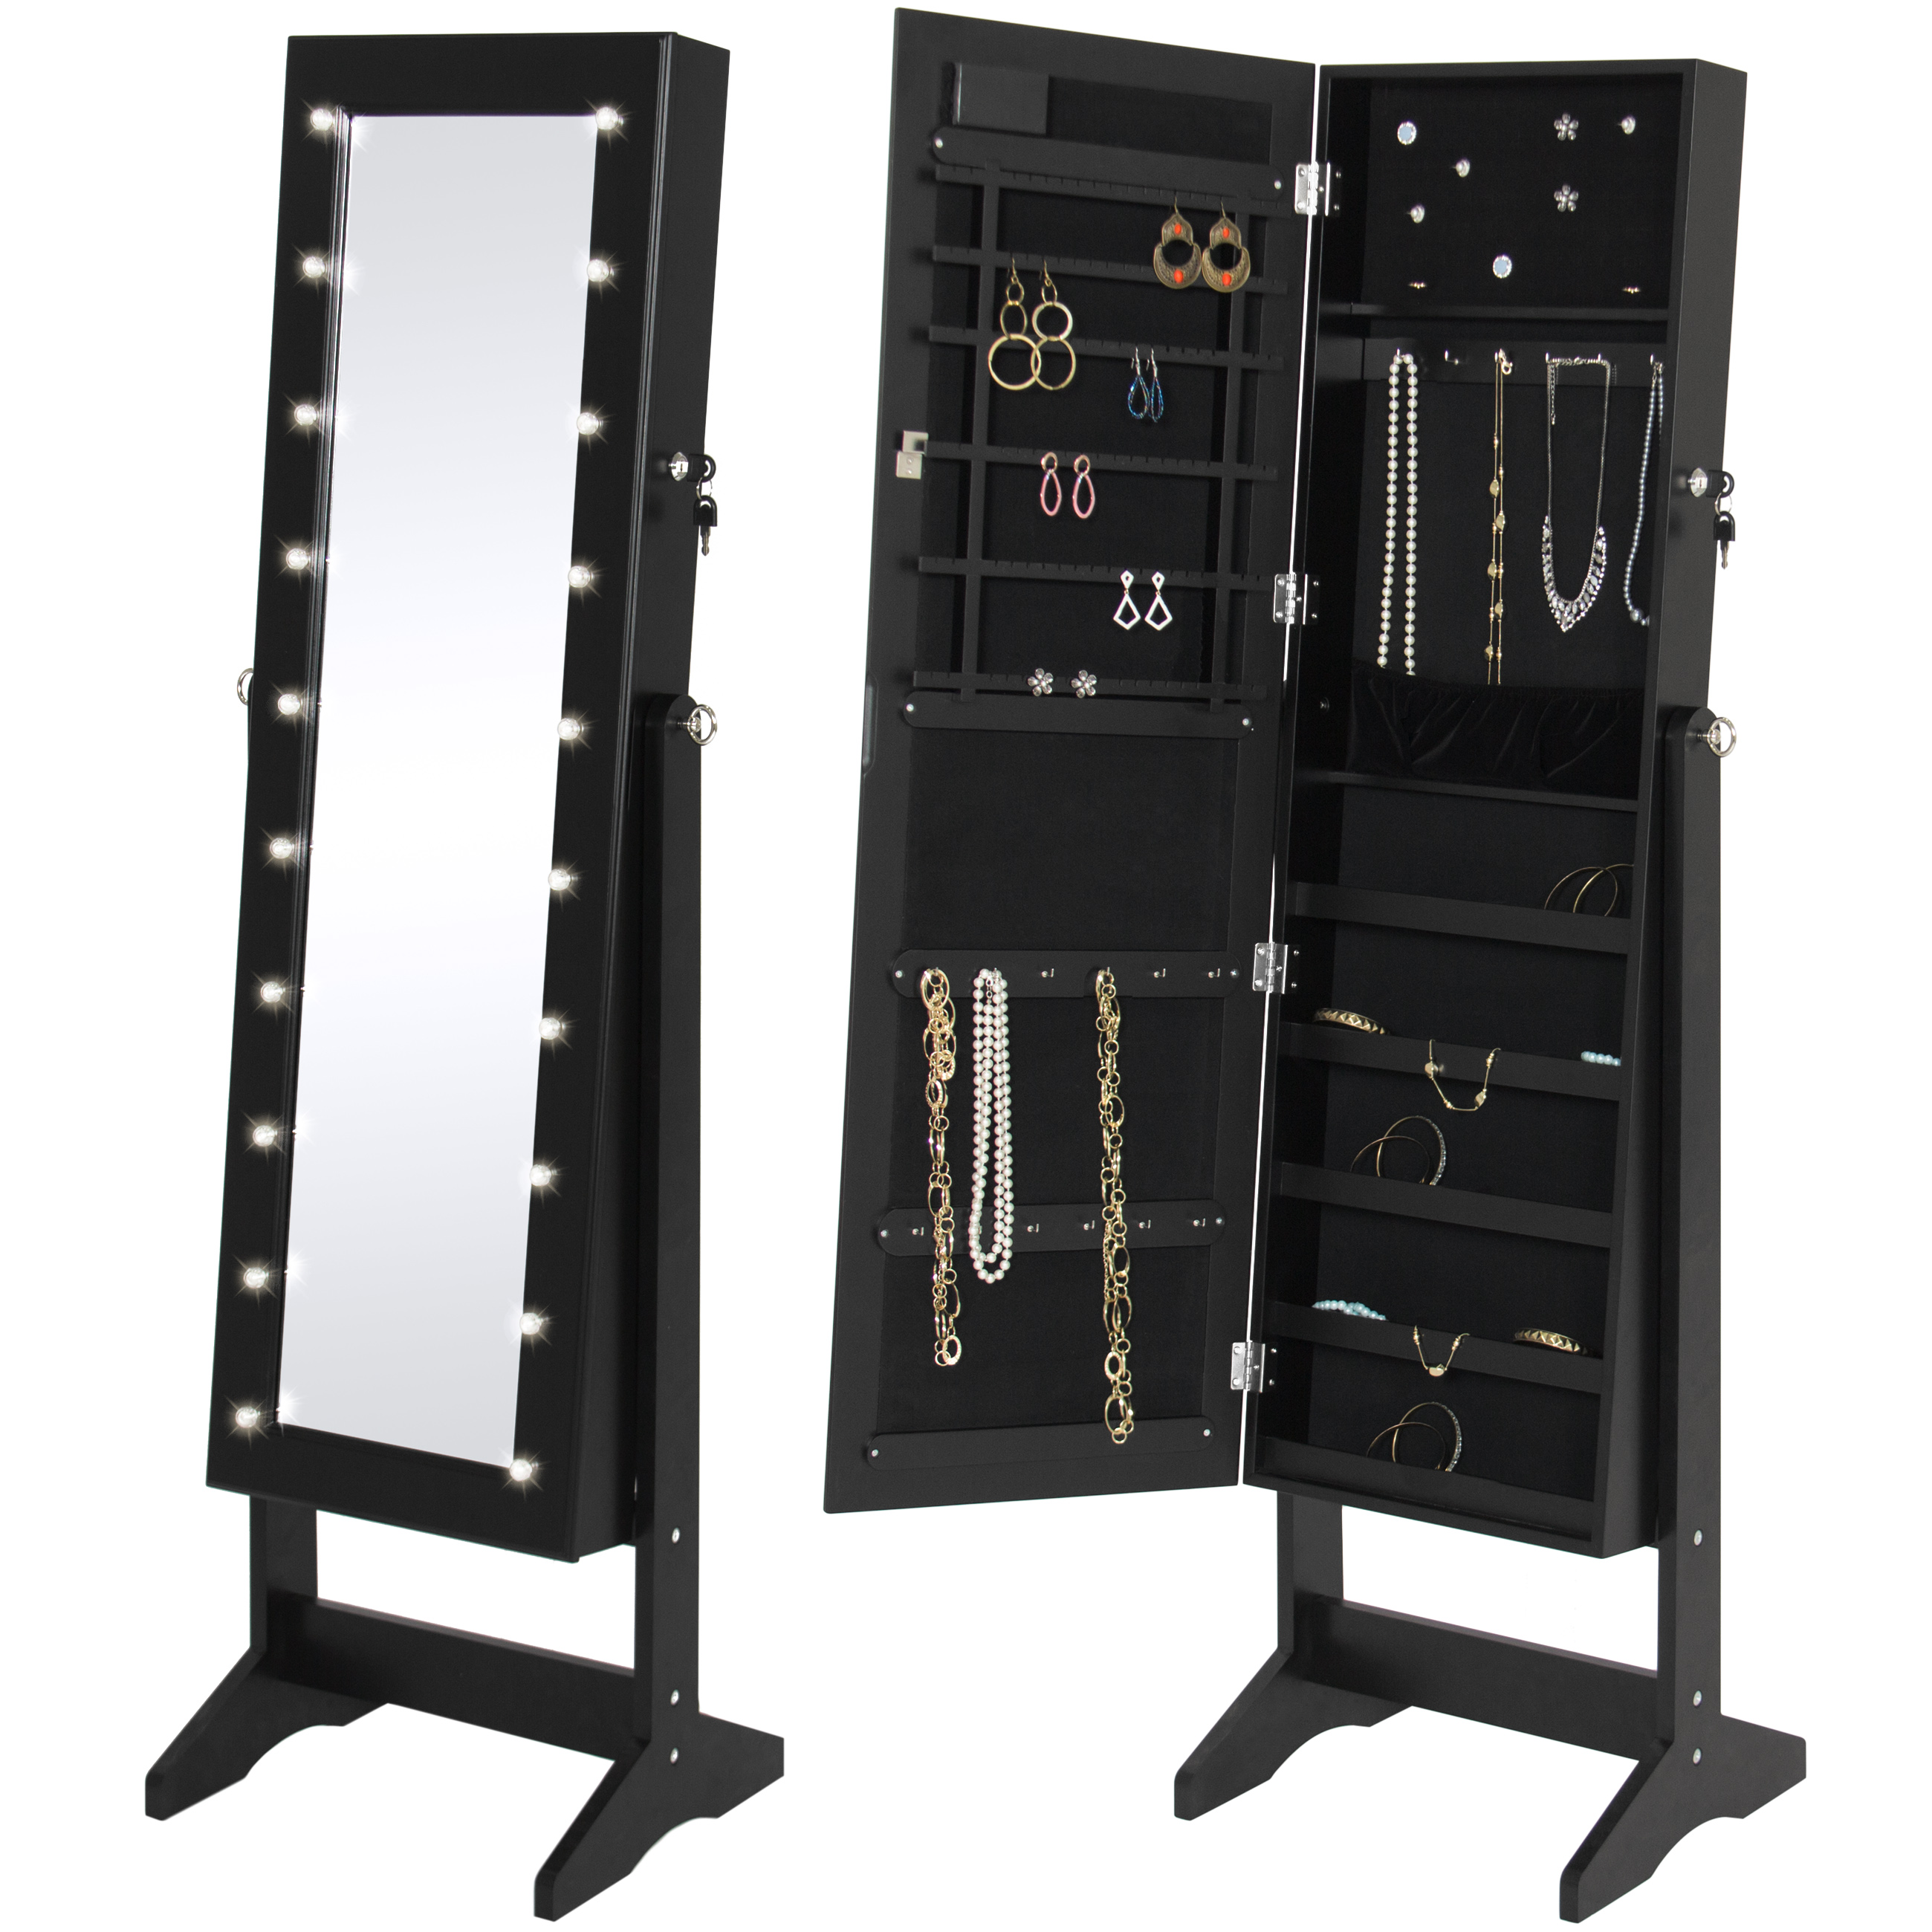 Best Choice Products LED Lighted Mirrored Jewelry Cabinet Armoire W/ Stand- Black